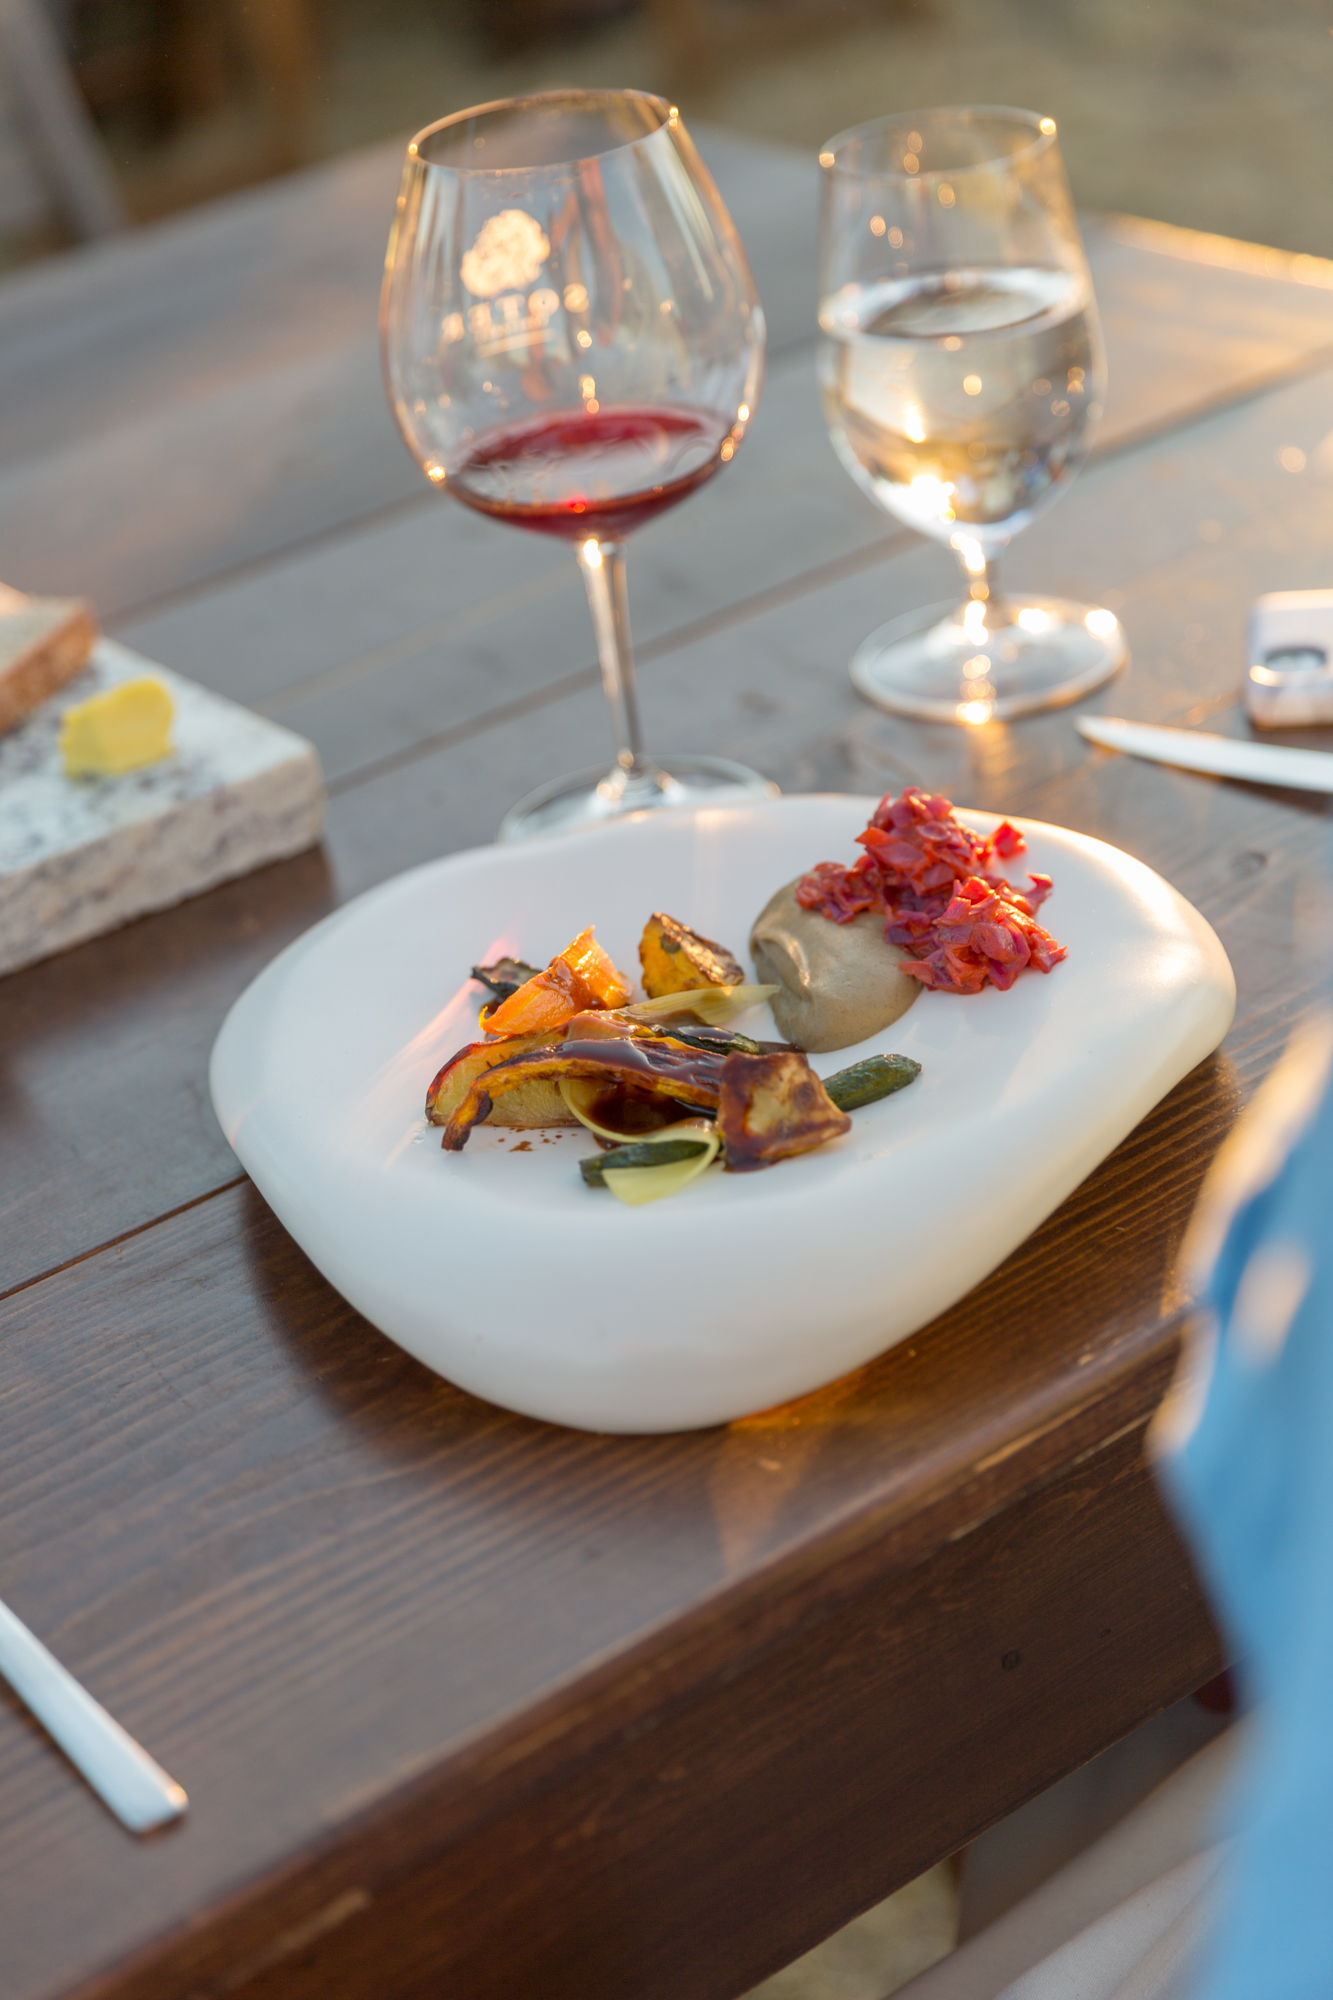 c stoll soter winery ipnc 2018 cloud plate table setting  .jpg